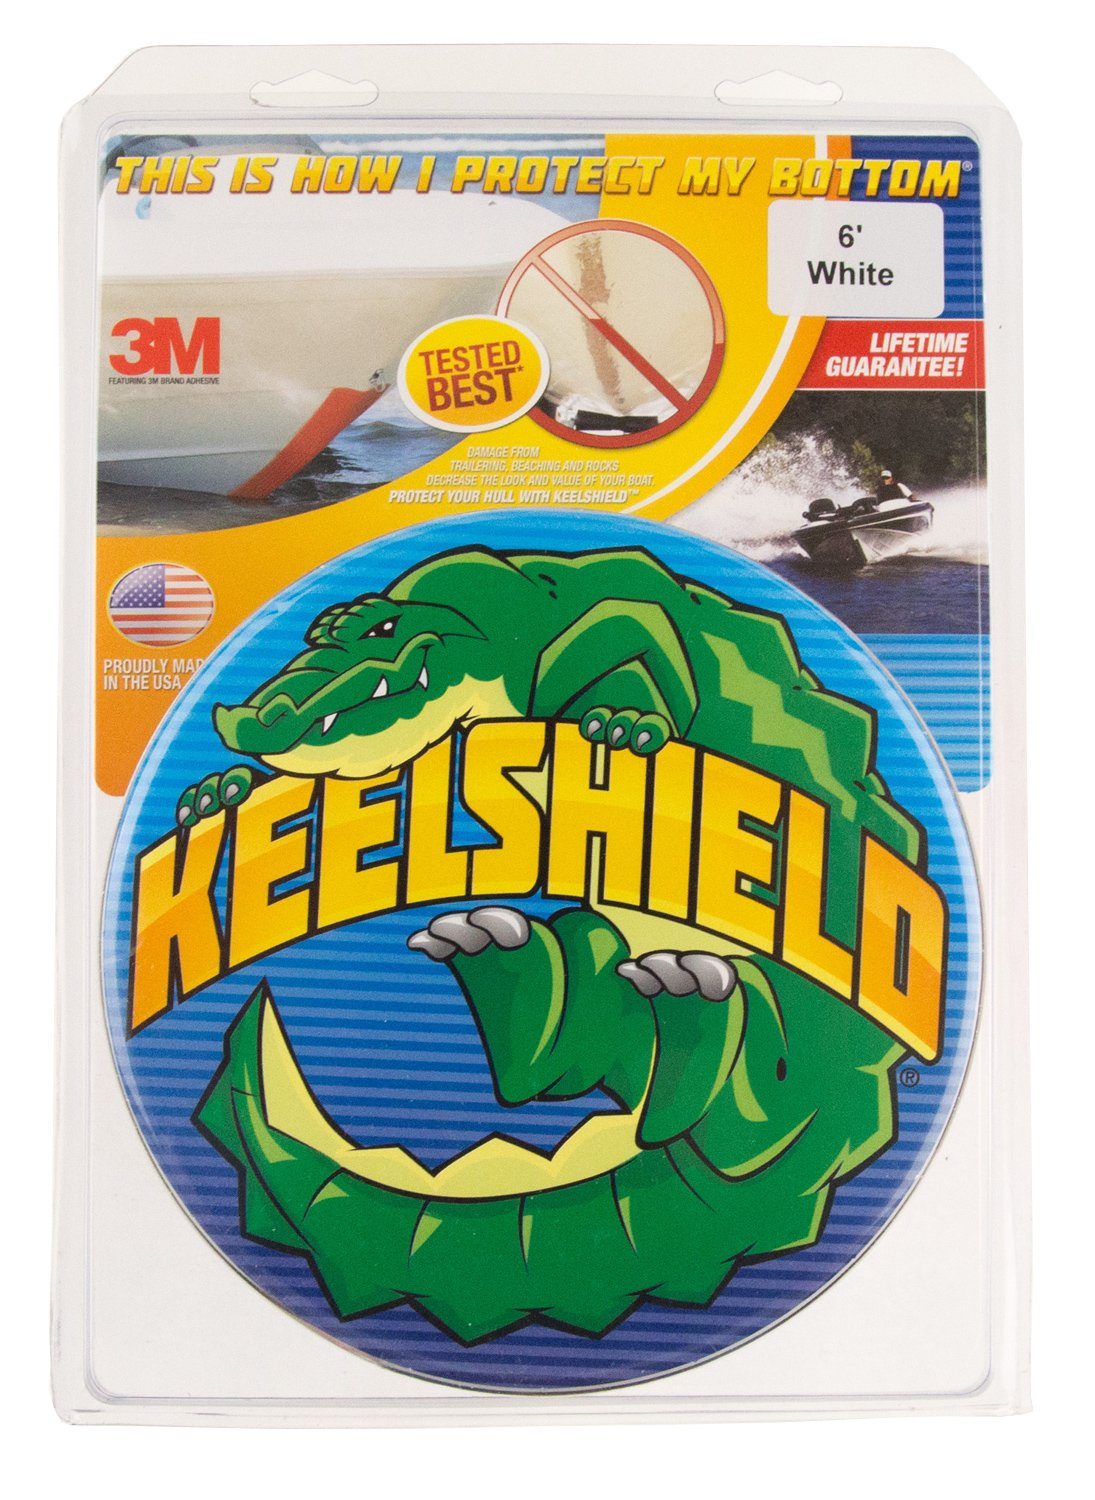 Hull Protector 3M 9 ft. Black- KeelShield